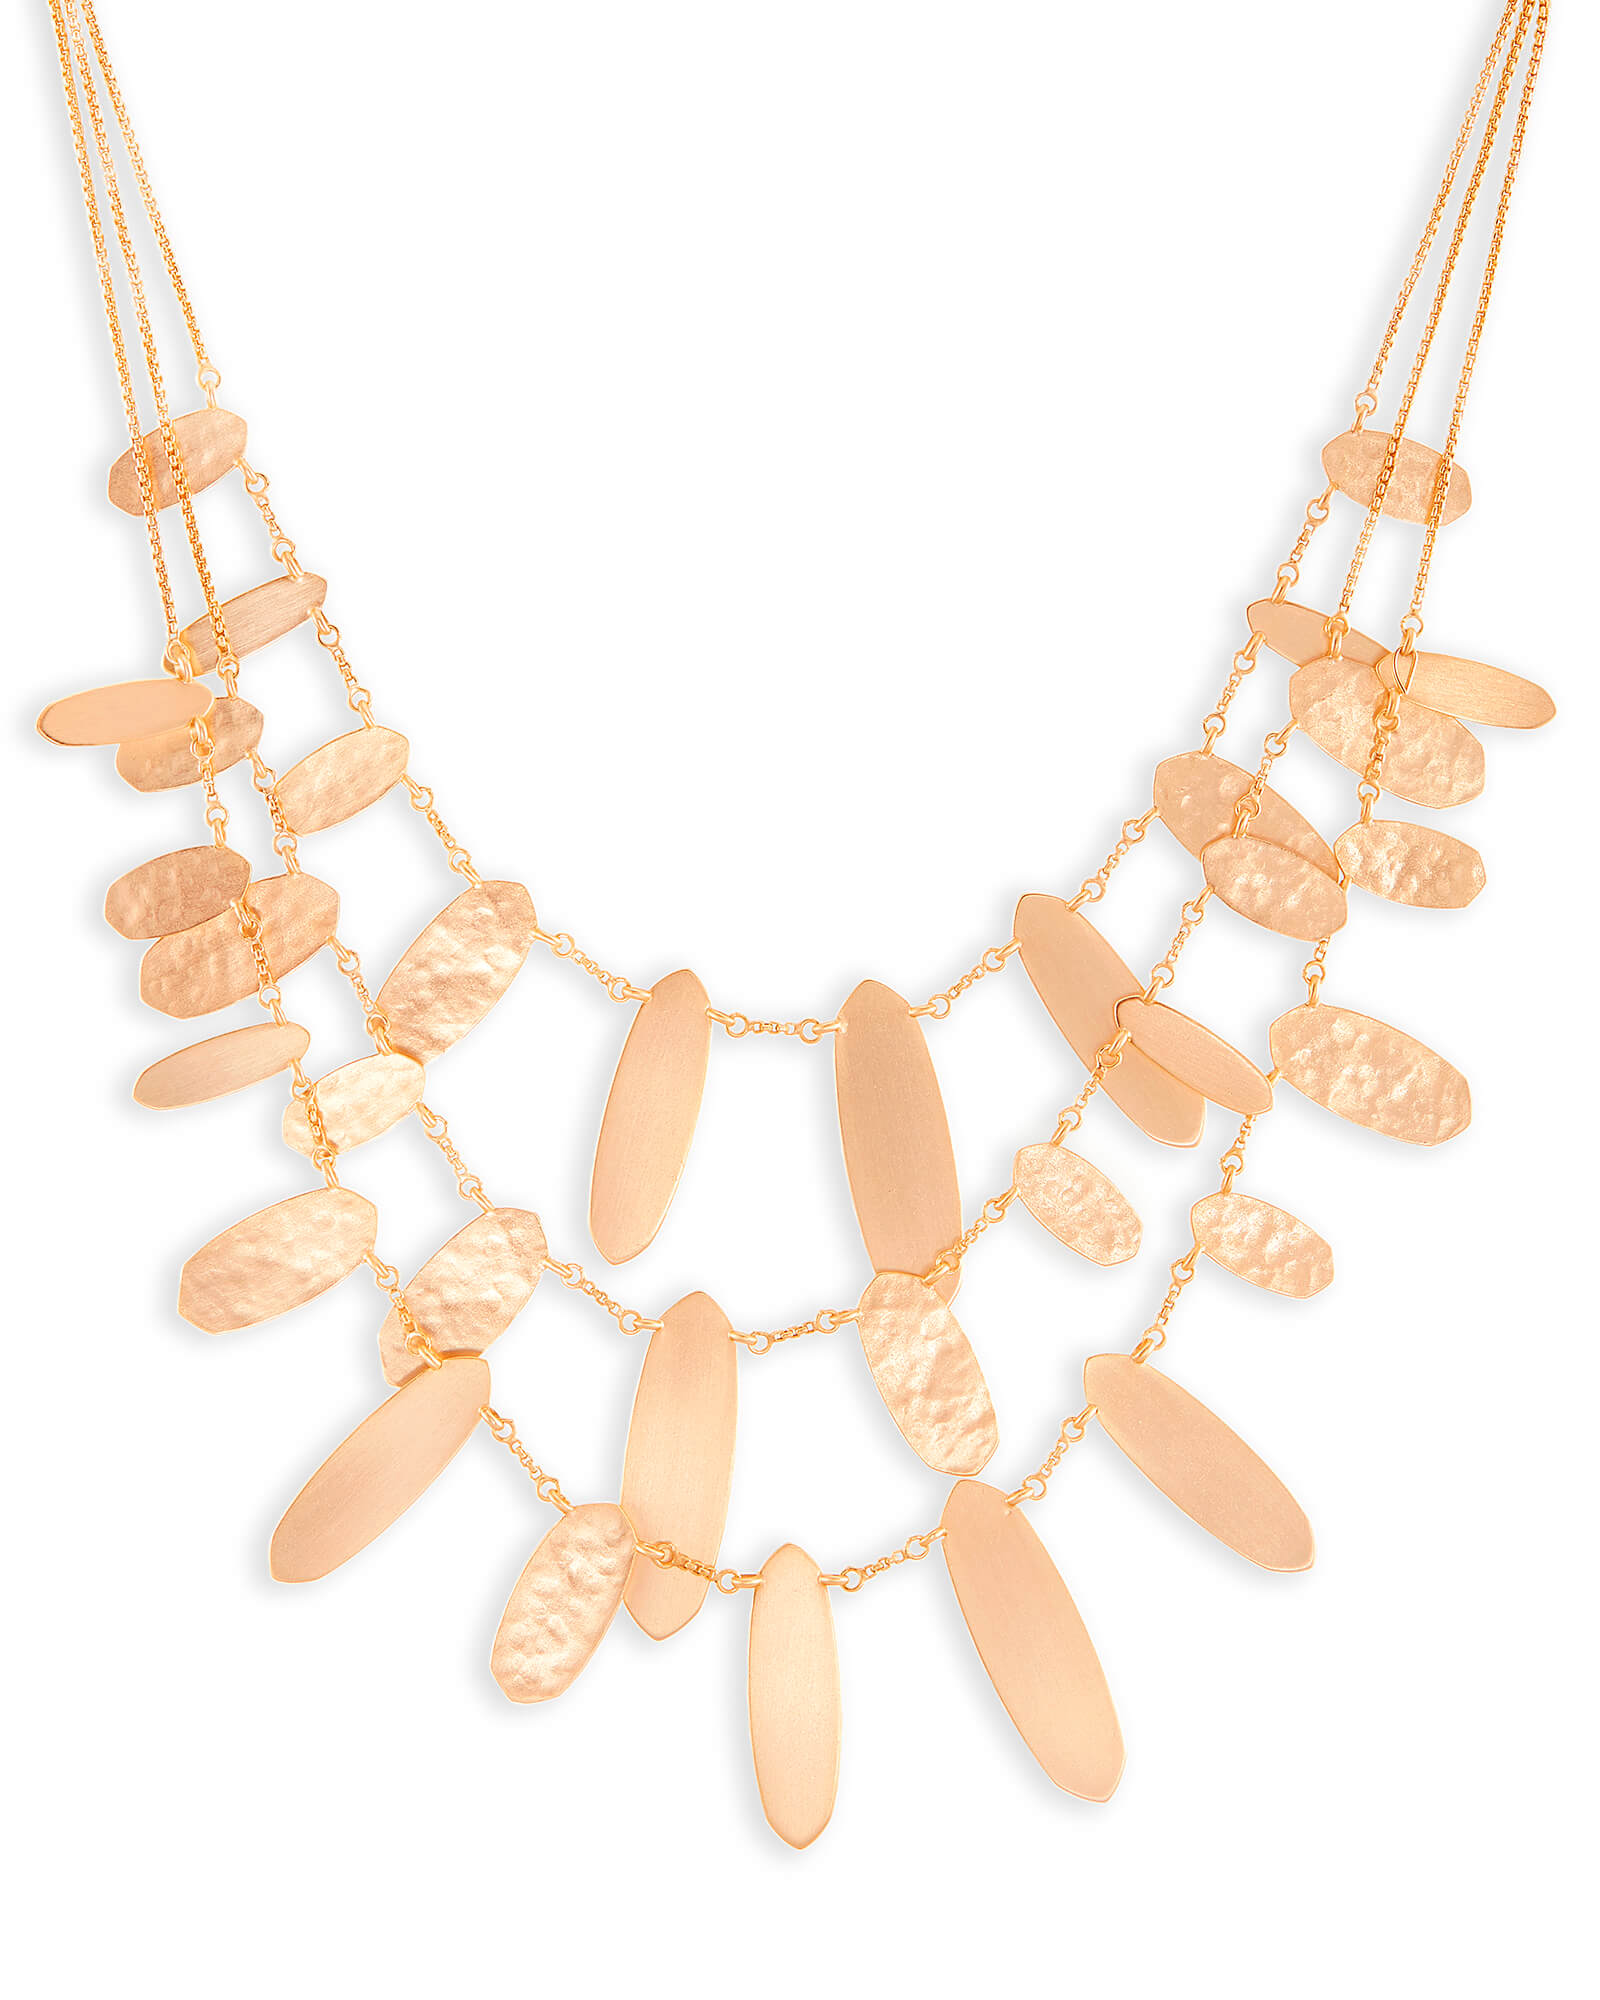 Nettie Statement Necklace in Rose Gold